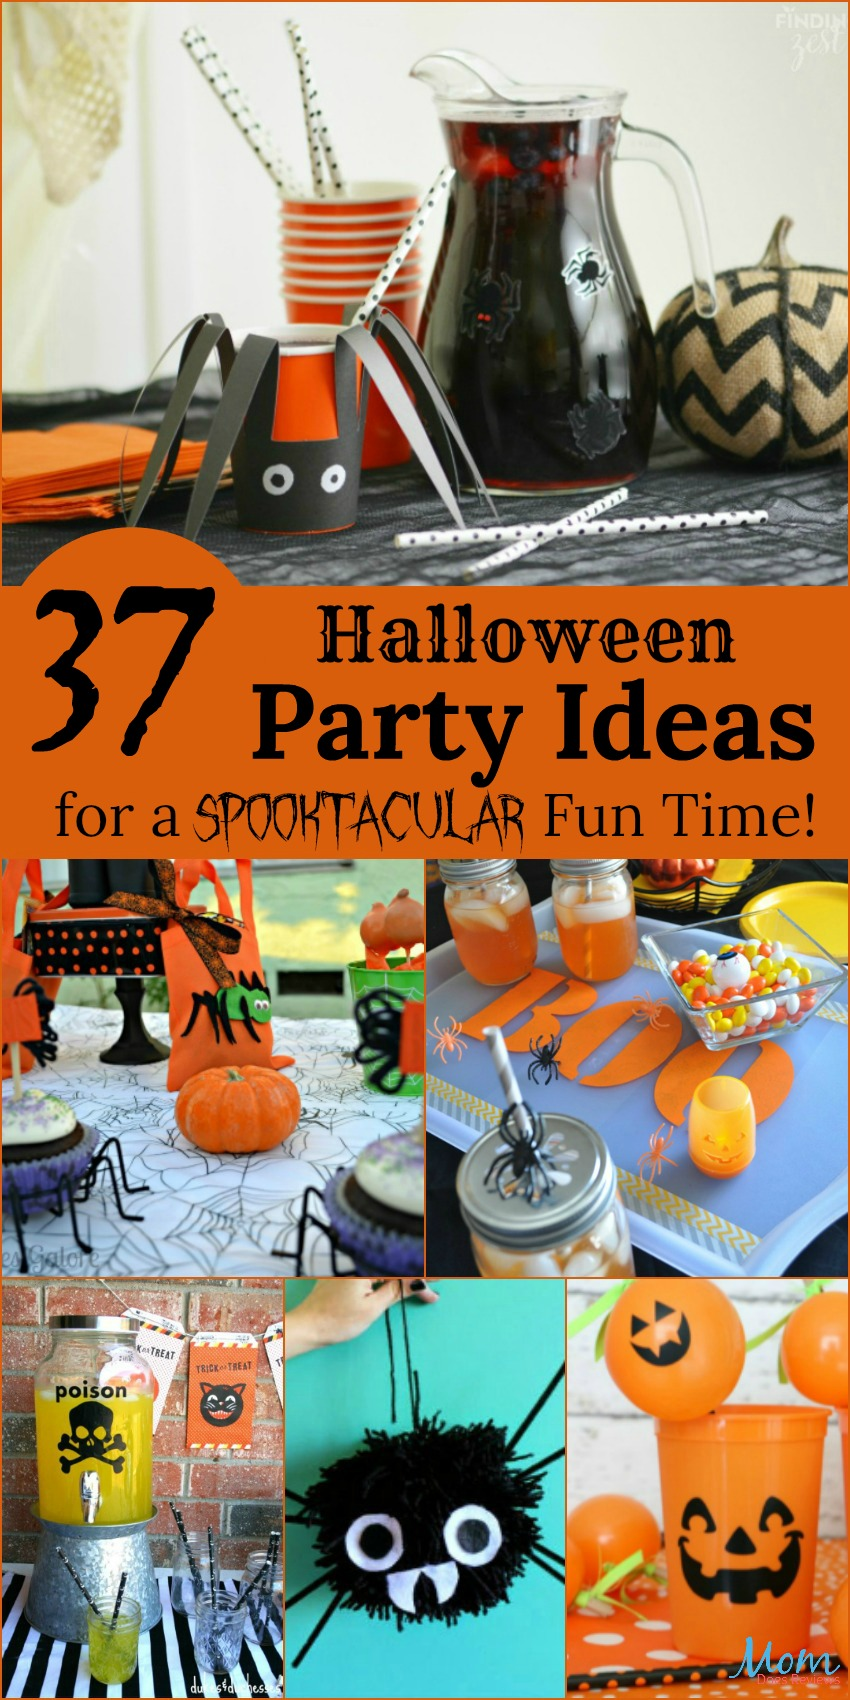 Halloween Party Ideas for a Spooktacular Good Time